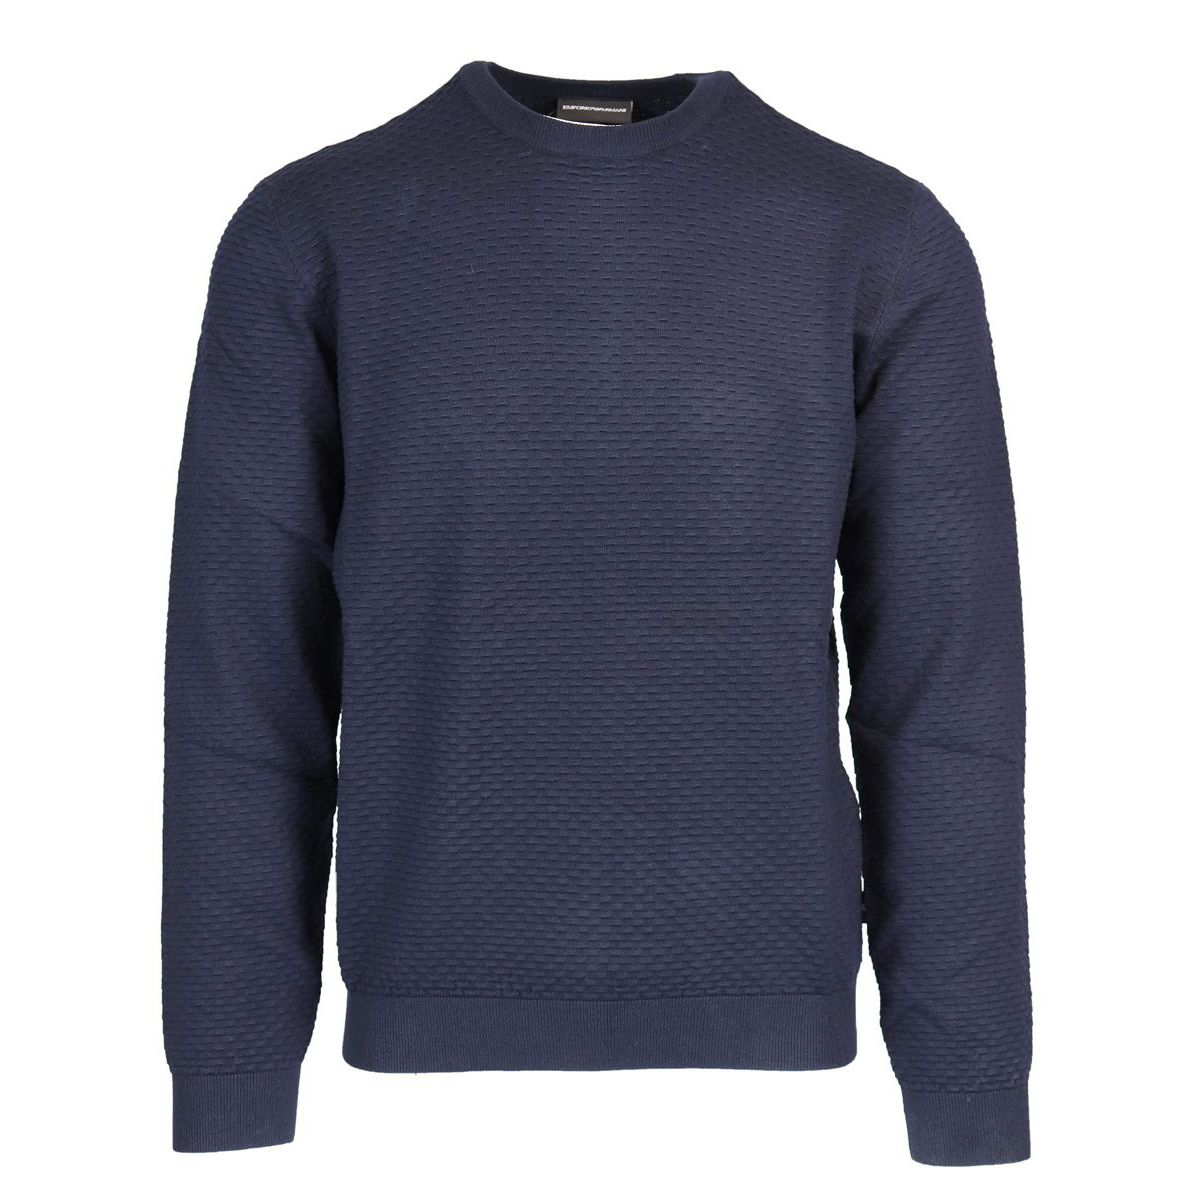 Crewneck sweater in viscose blend with relief contrasts Navy Emporio Armani